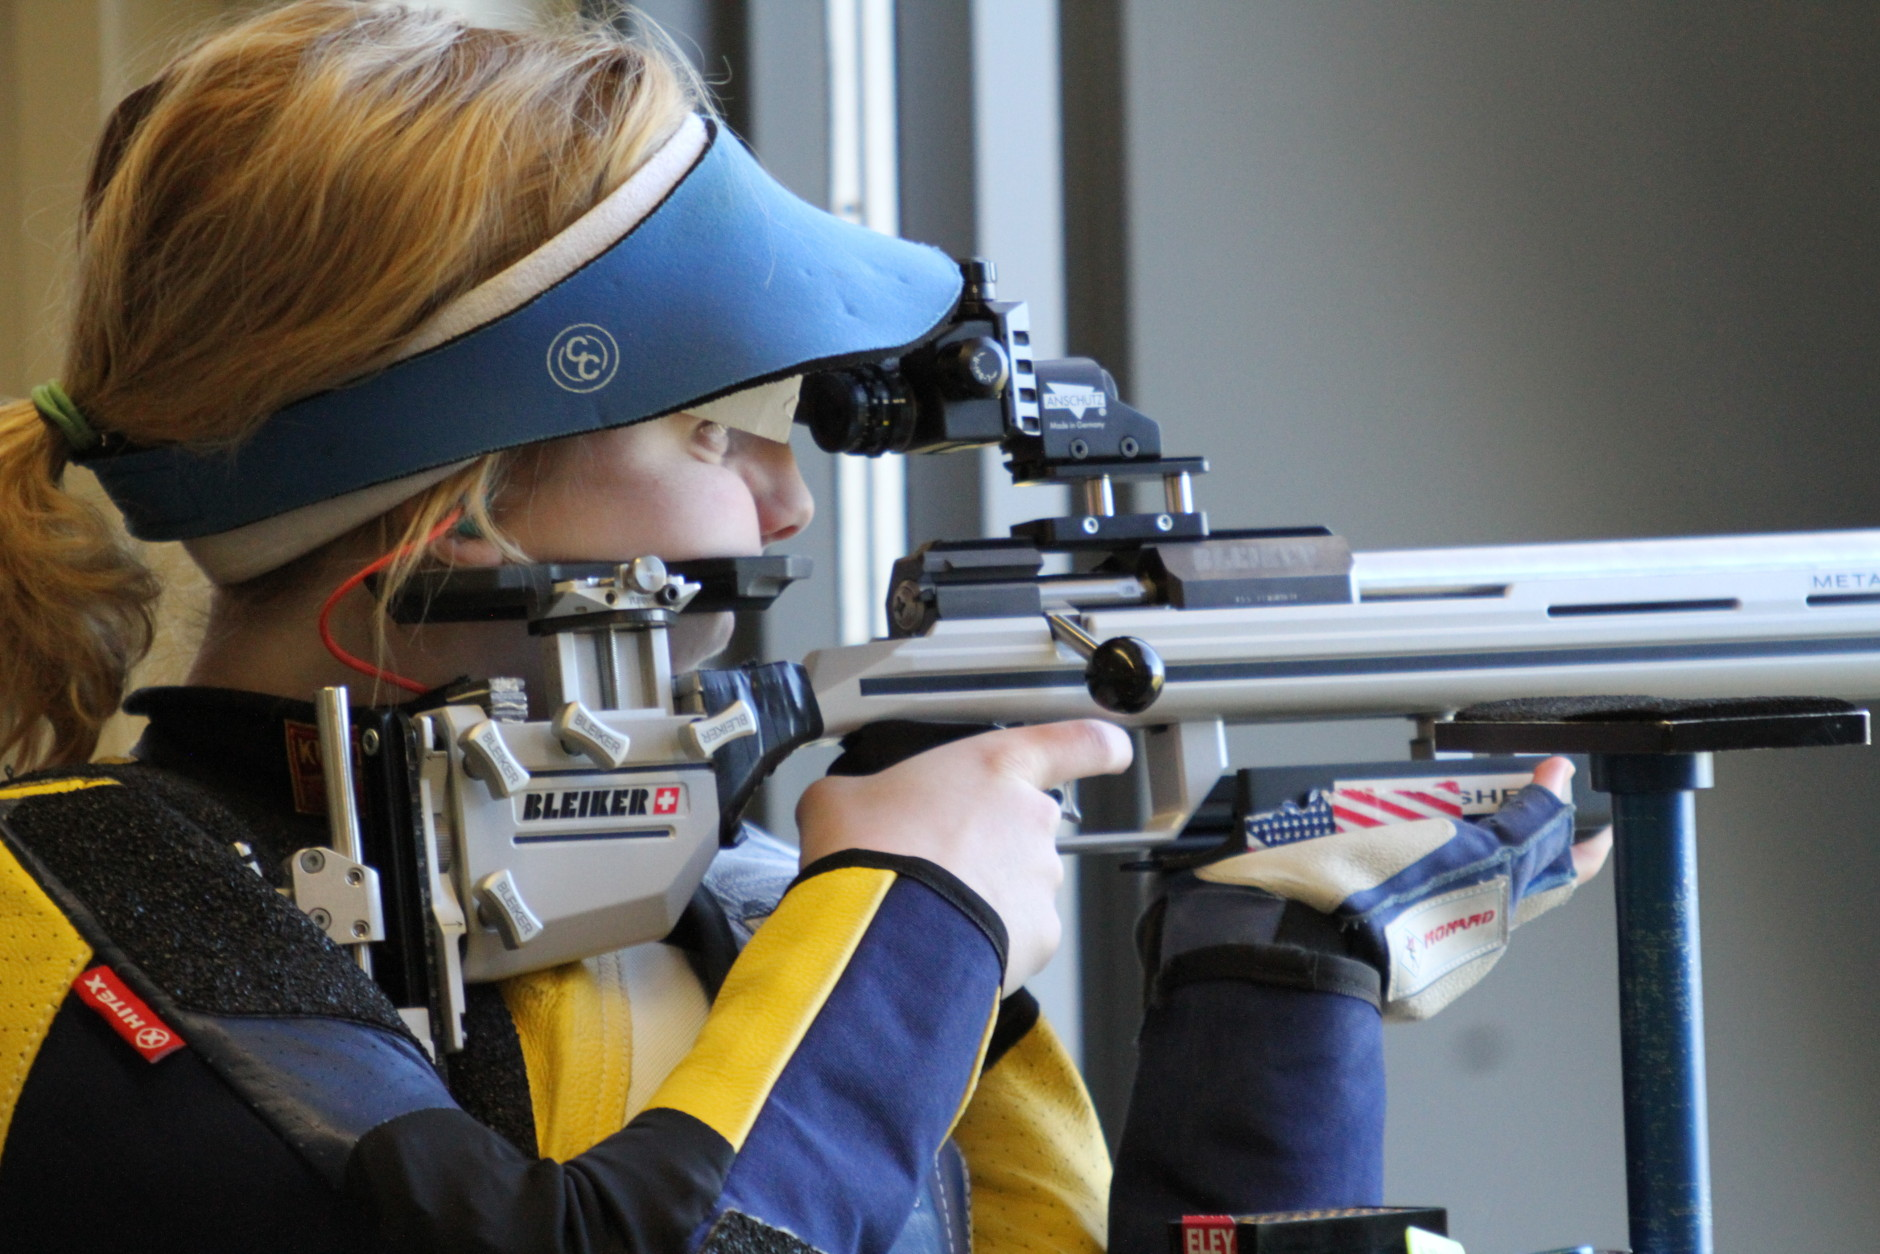 In this image provided by USA Shooting, Ginny Thrasher is shown at the 2016 U.S. Olympic Team Trials for Smallbore at Fort Benning, Ga., in April. Thrasher was a surprise double NCAA champion as a freshman and followed that up by winning the U.S. Olympic Trials three weeks later. After a run like that, there's no reason to think she can't win Olympic gold in Rio. (USA Shooting via AP)